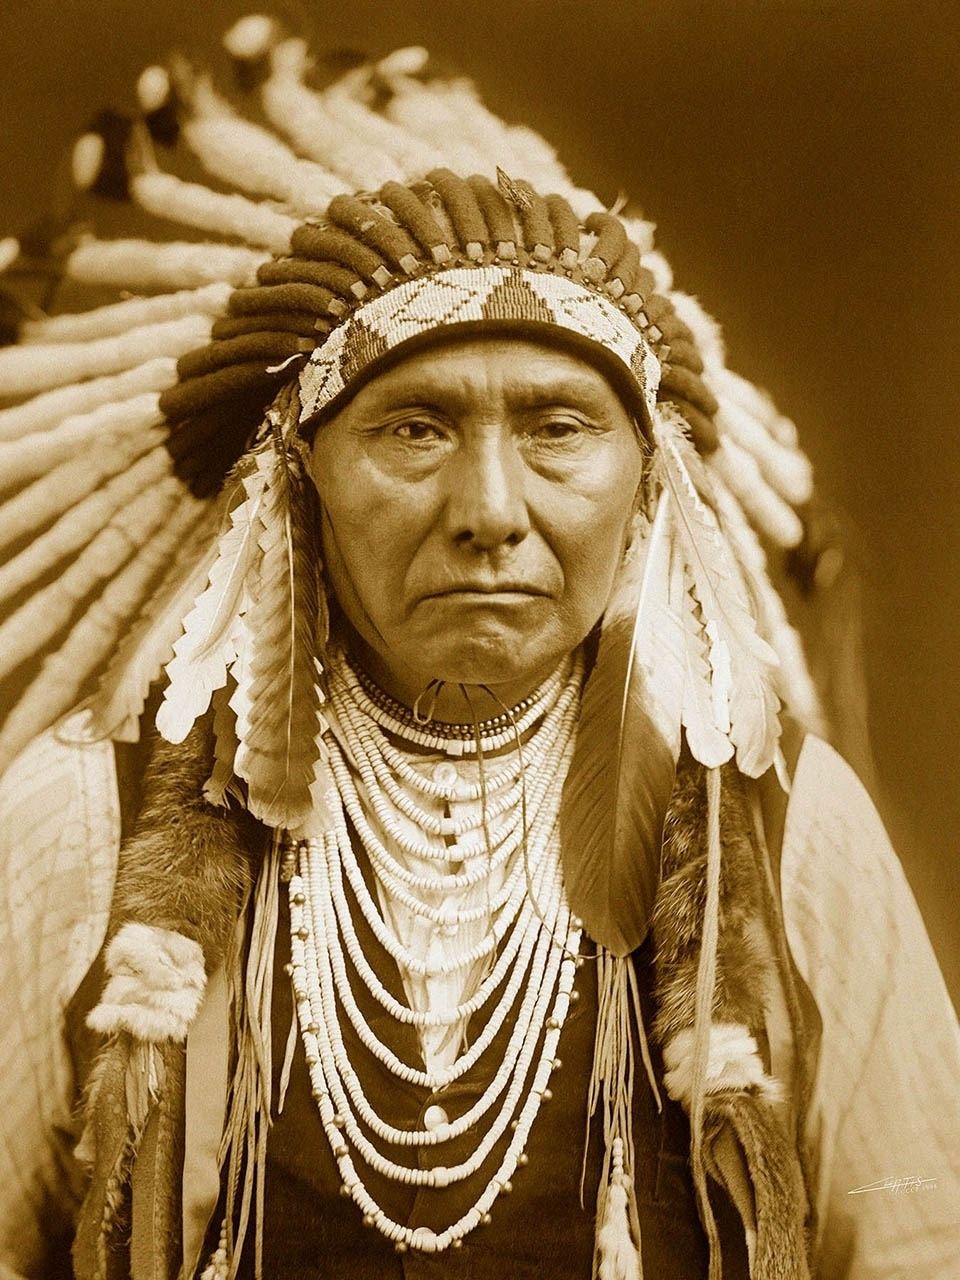 Native American persecuted?!